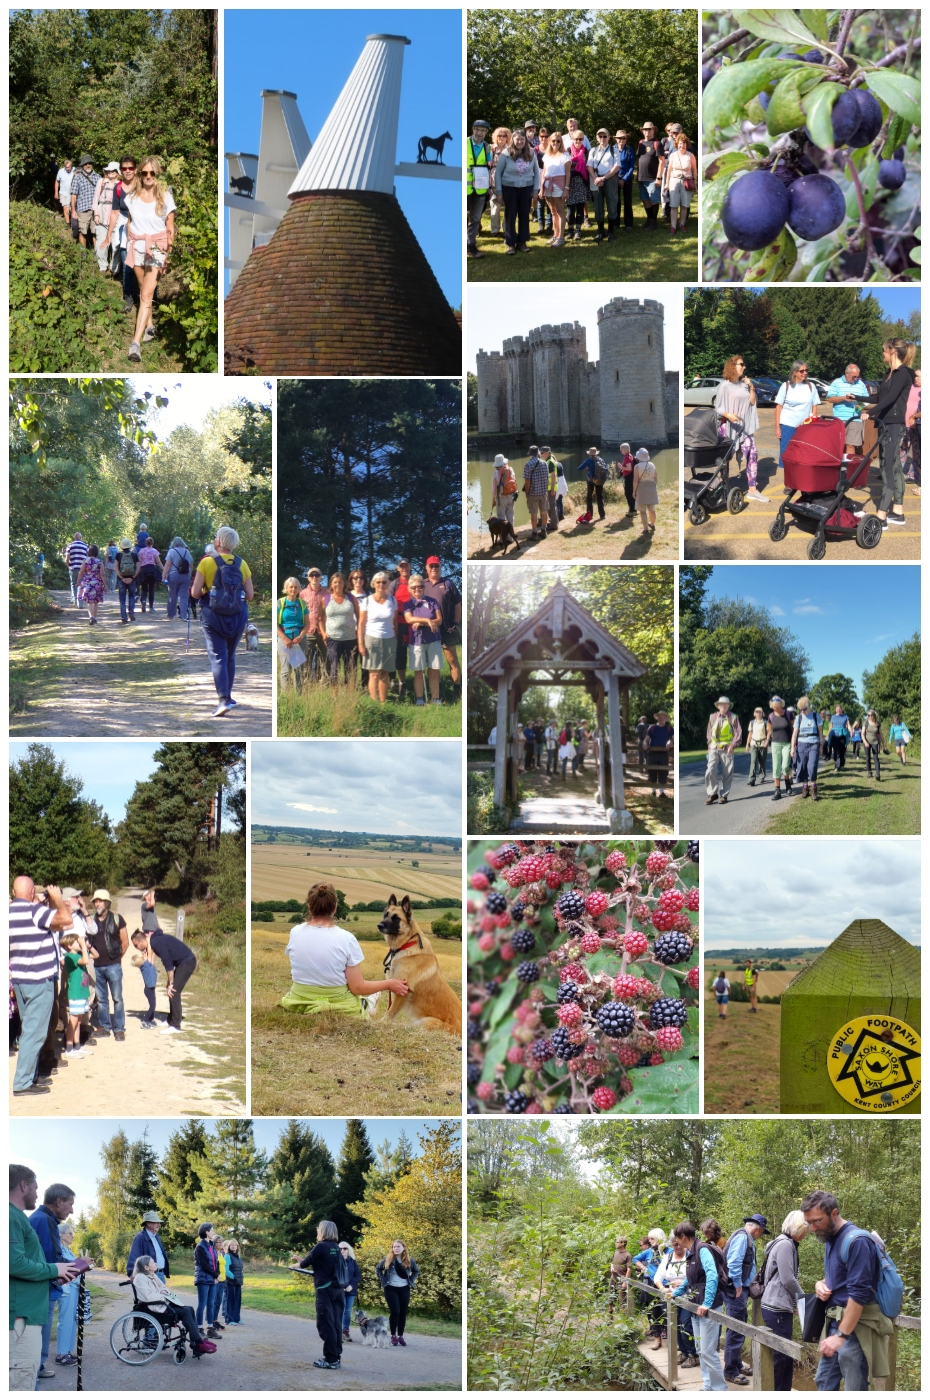 High Weald Walking Festival in pictures